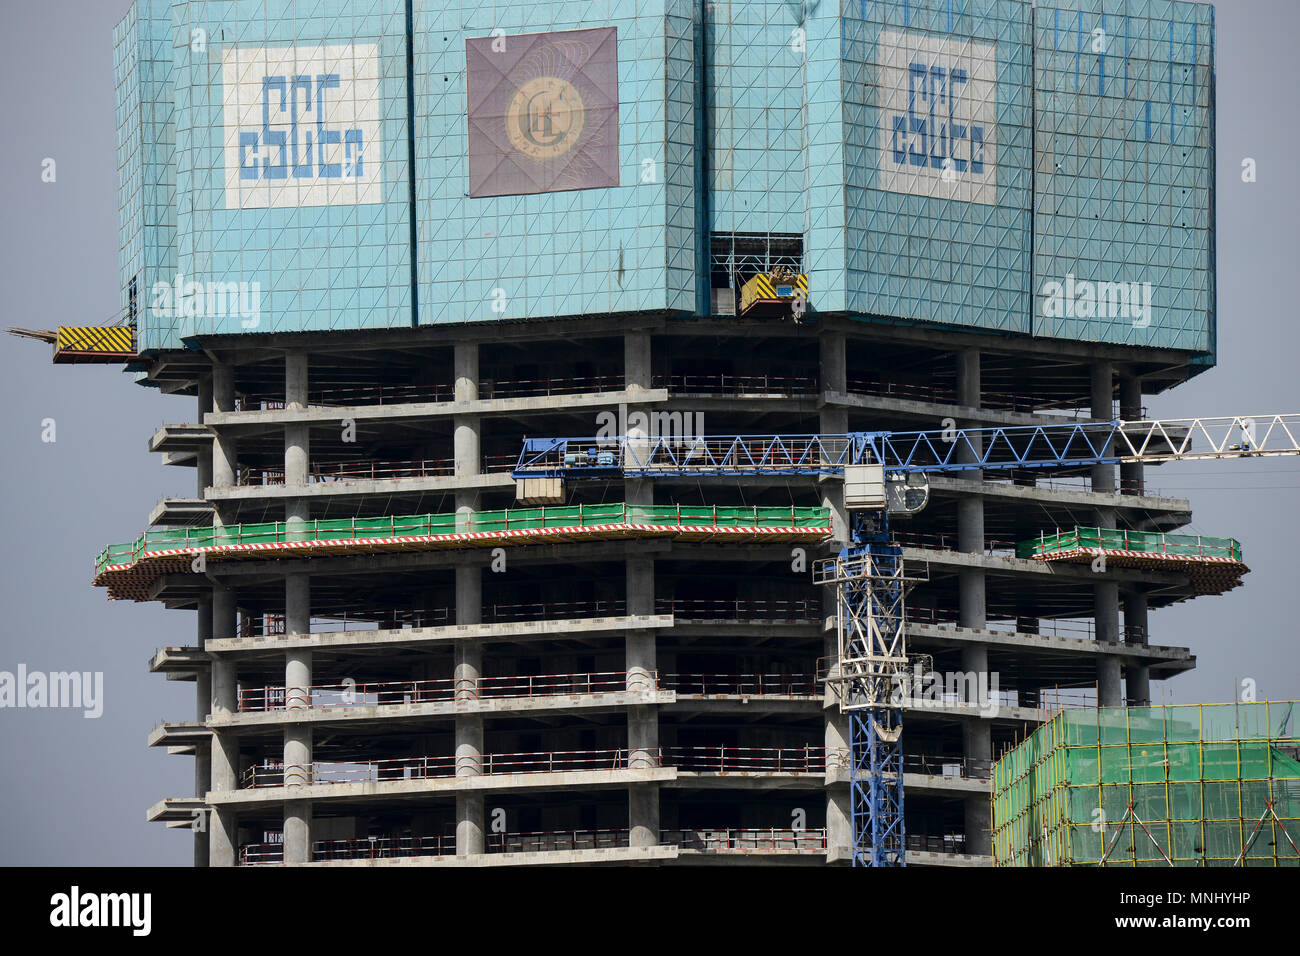 ETHIOPIA , Addis Ababa, office tower and Bank building construction by CSCEC China State Construction Engineering Corporation Ltd. / AETHIOPIEN, Addis Abeba, Baustellen chinesischer Baufirmen - Stock Image